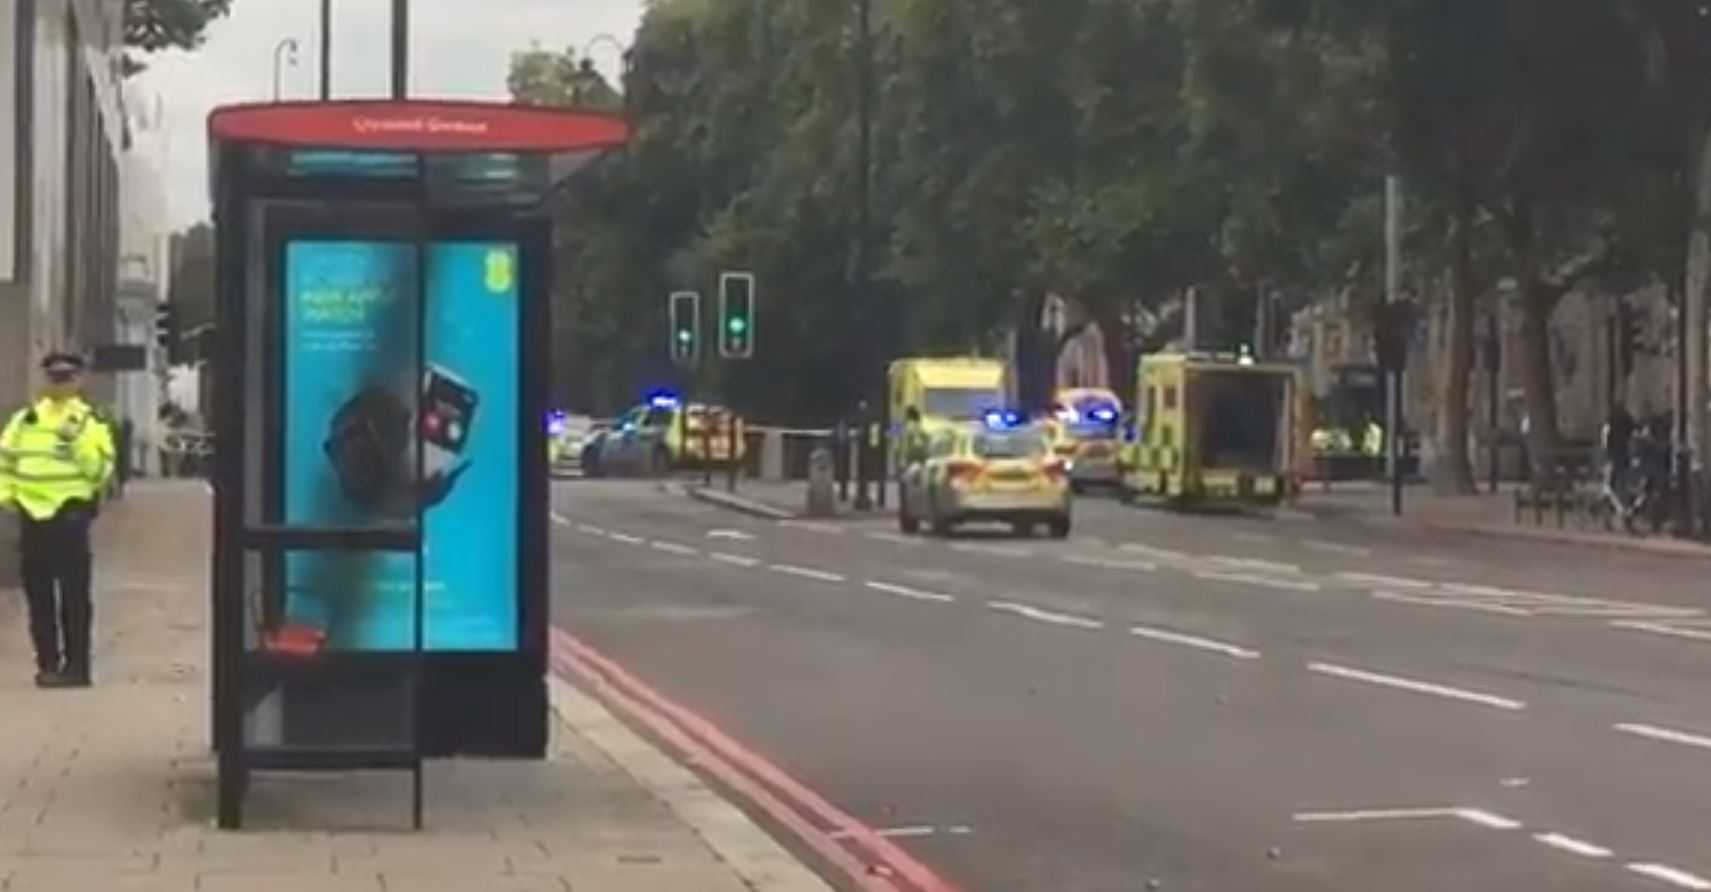 Vehicle mounts pavement and strikes pedestrians outside London museum